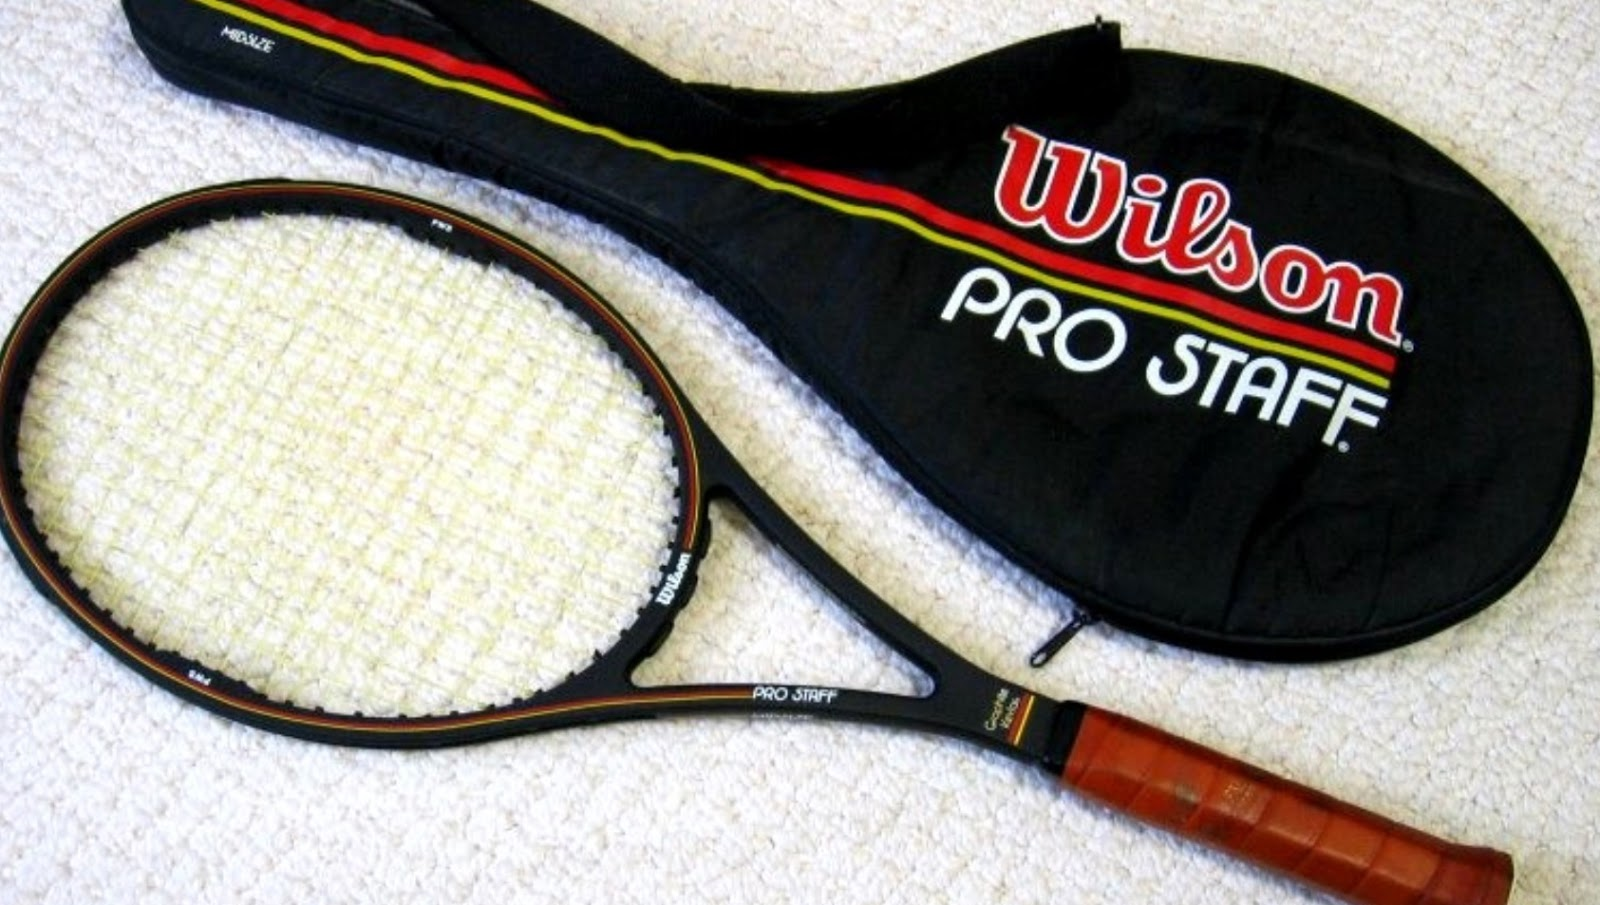 Wilson Pro Staff 85 Original price $2000